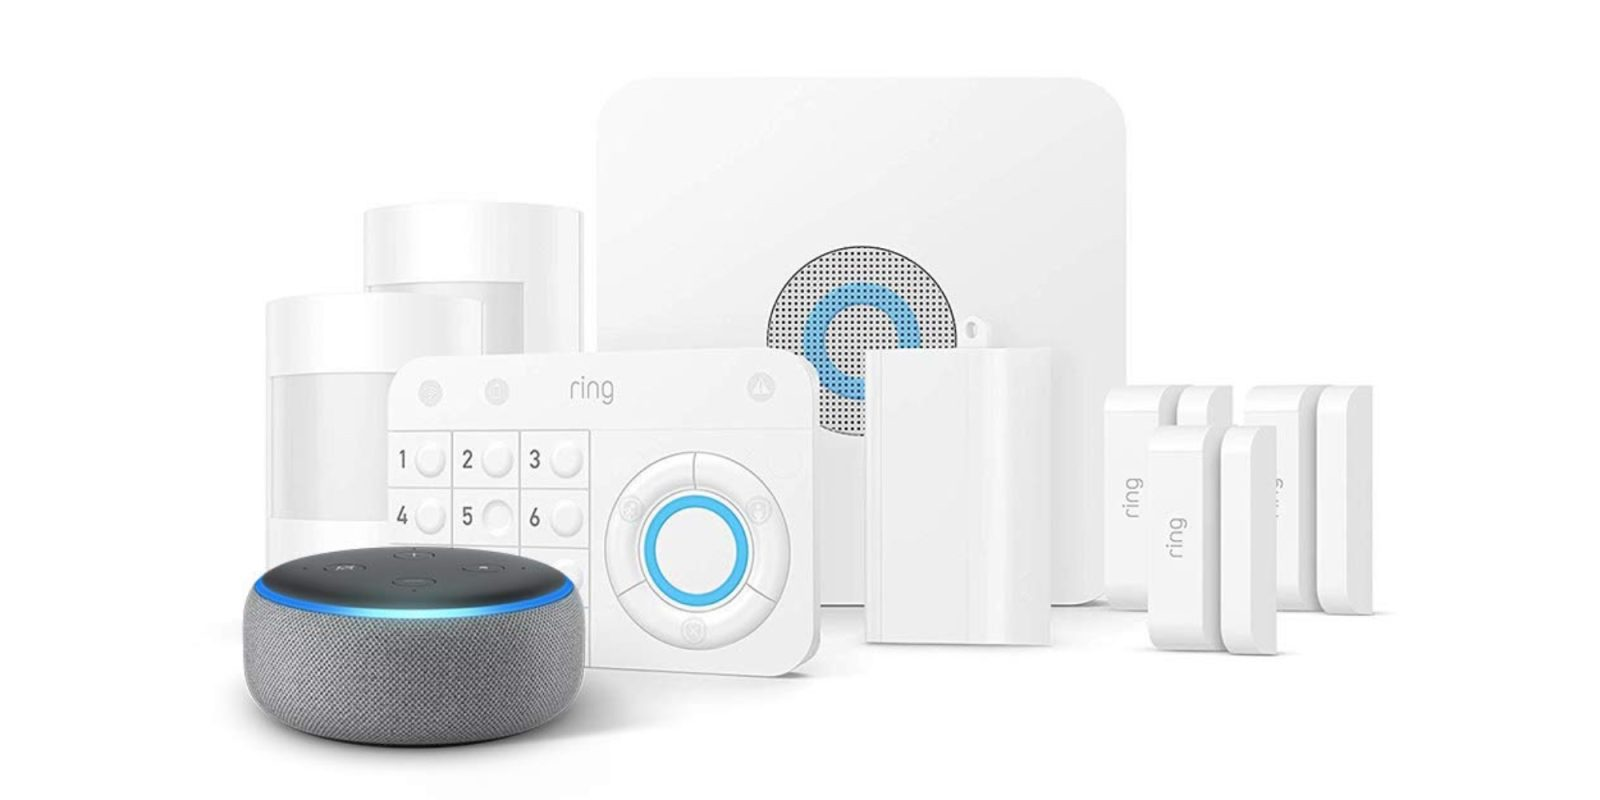 Bundle an 8-piece Ring Alarm Security System and Echo Dot at $189 ($269 value)